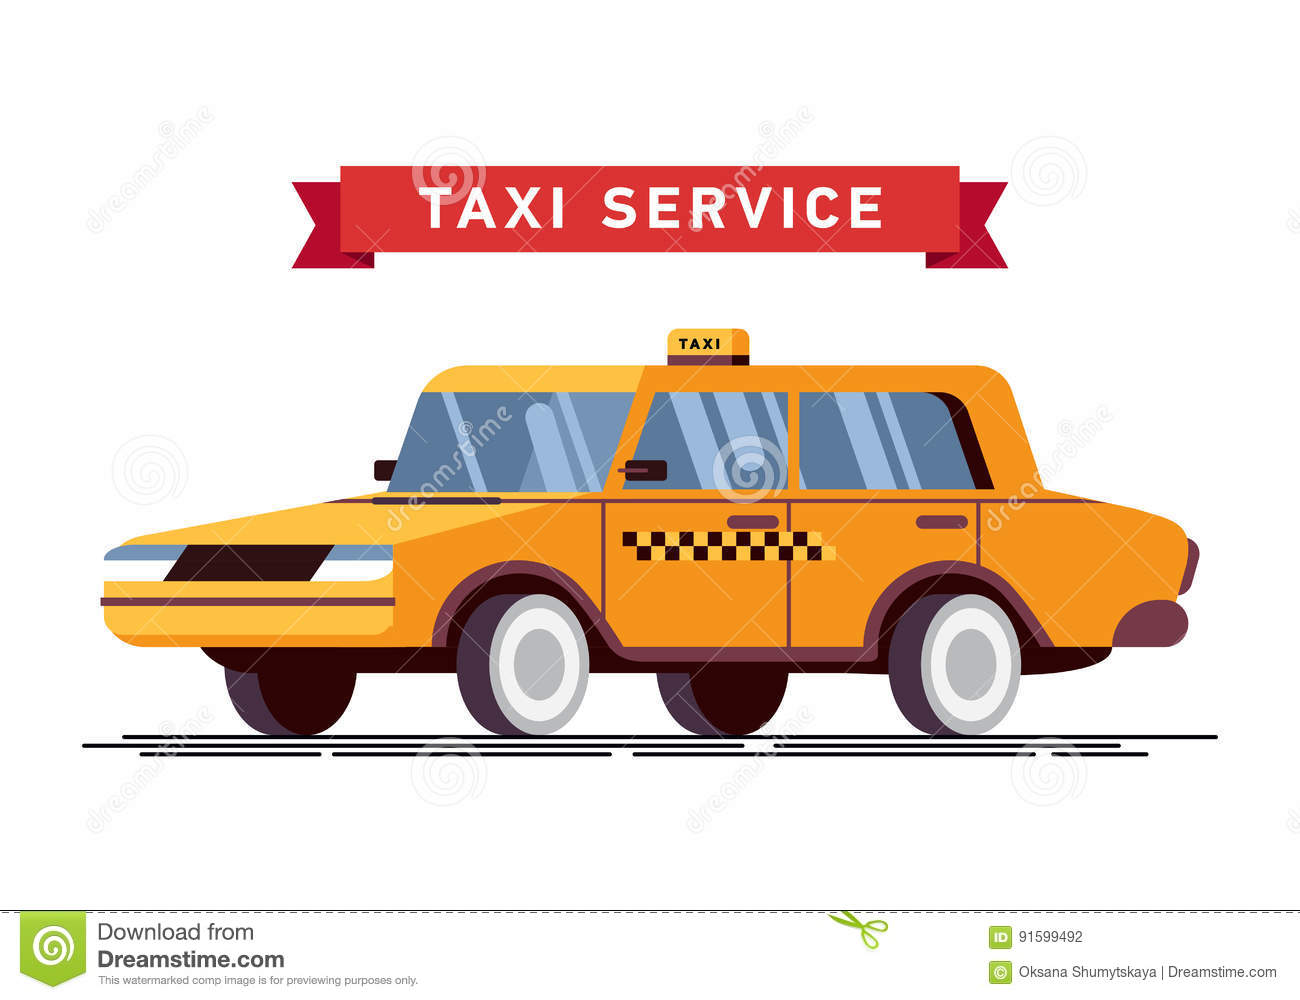 taximeter cartoons illustrations vector stock images 116 pictures to download from. Black Bedroom Furniture Sets. Home Design Ideas